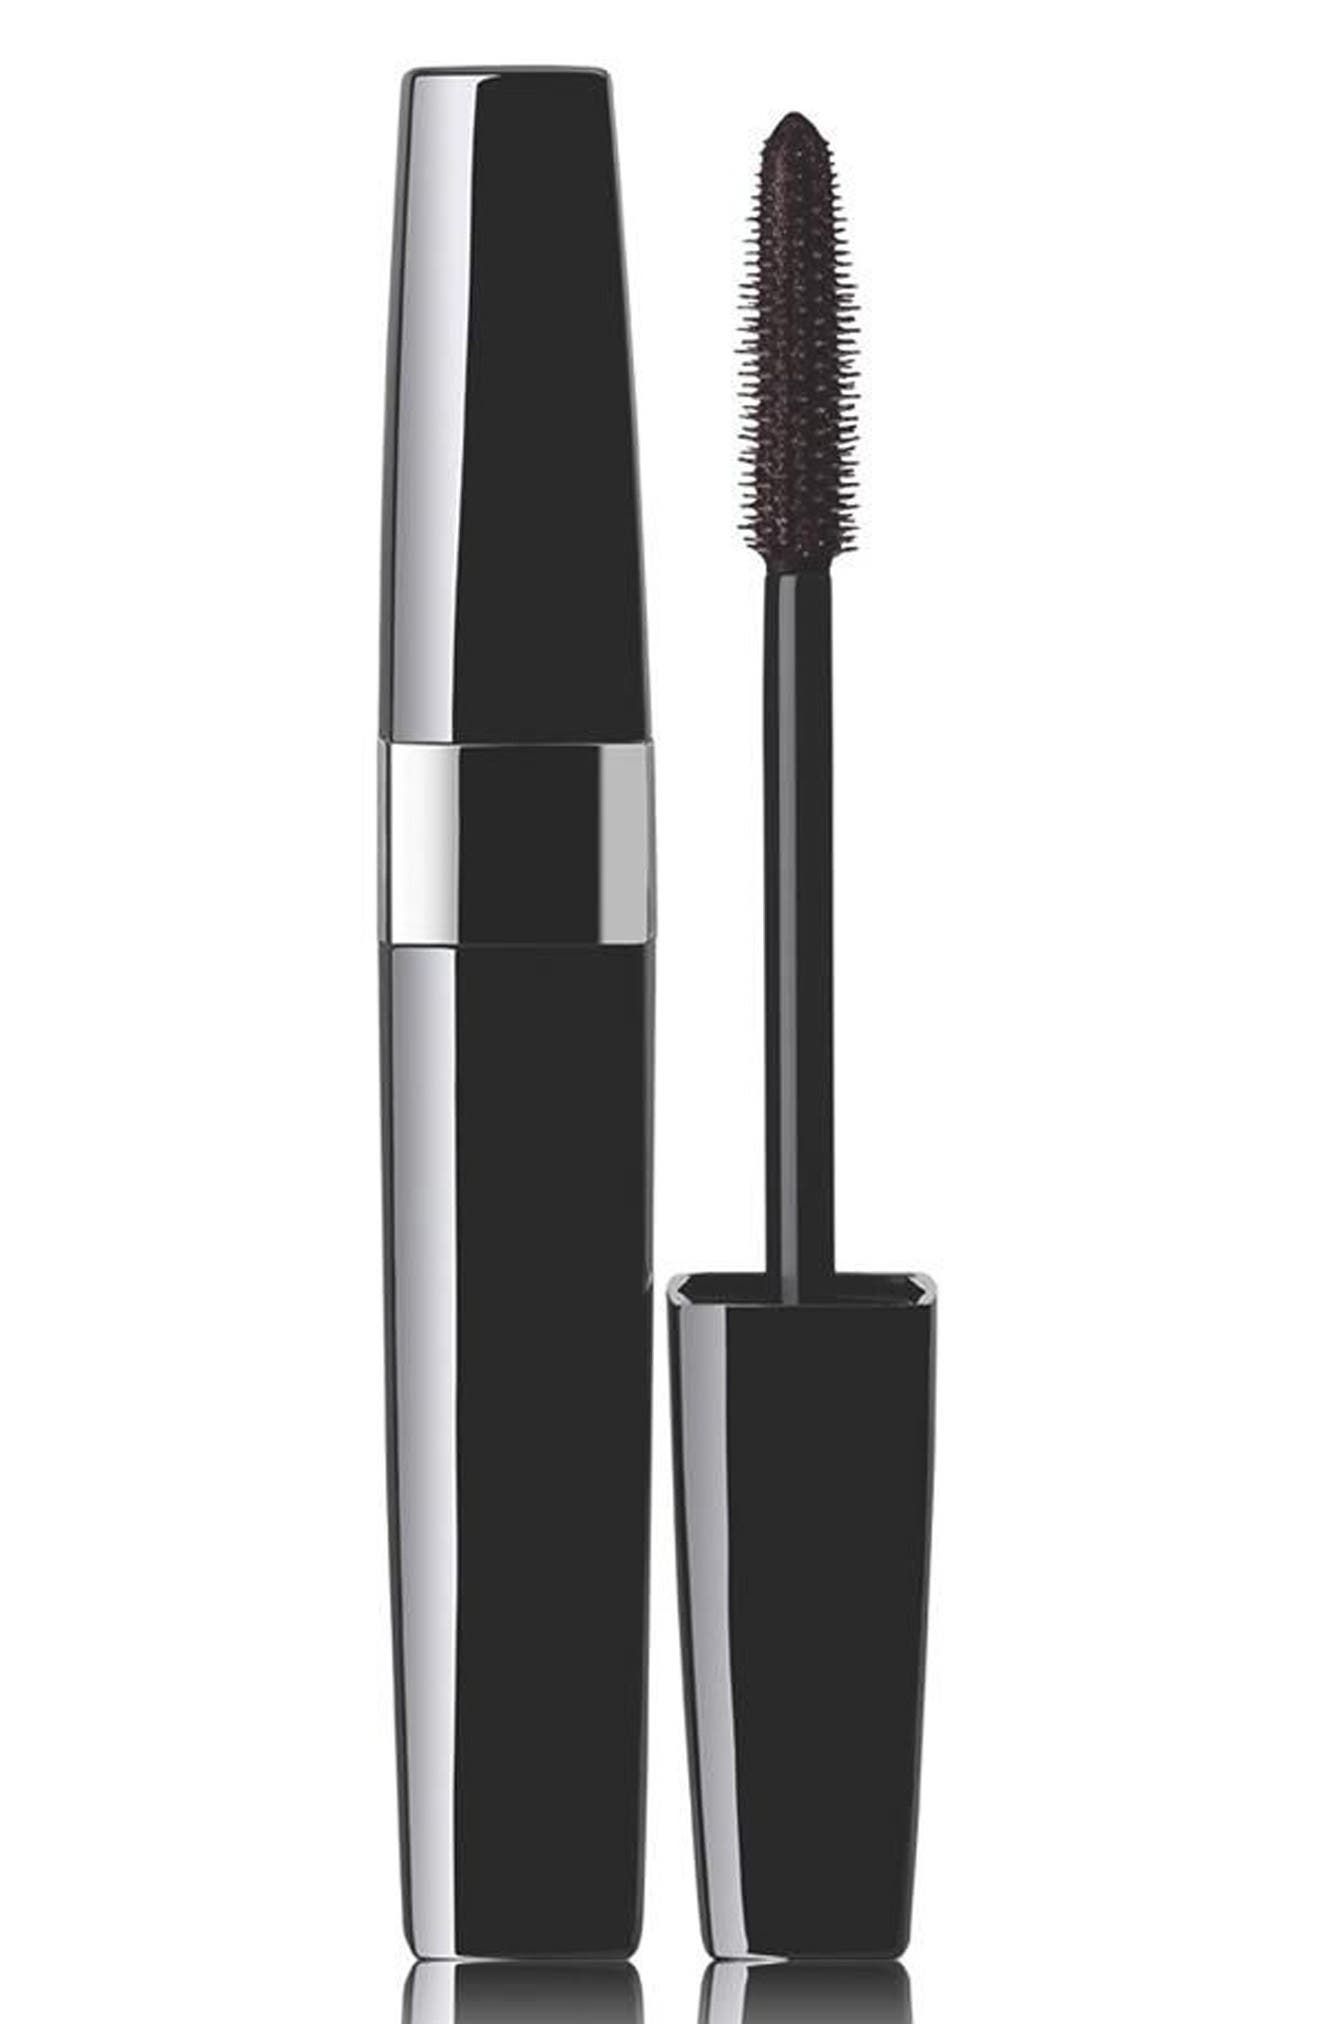 Main Image - CHANEL INIMITABLE INTENSE Mascara Multi-Dimensionnel Sophistiqué